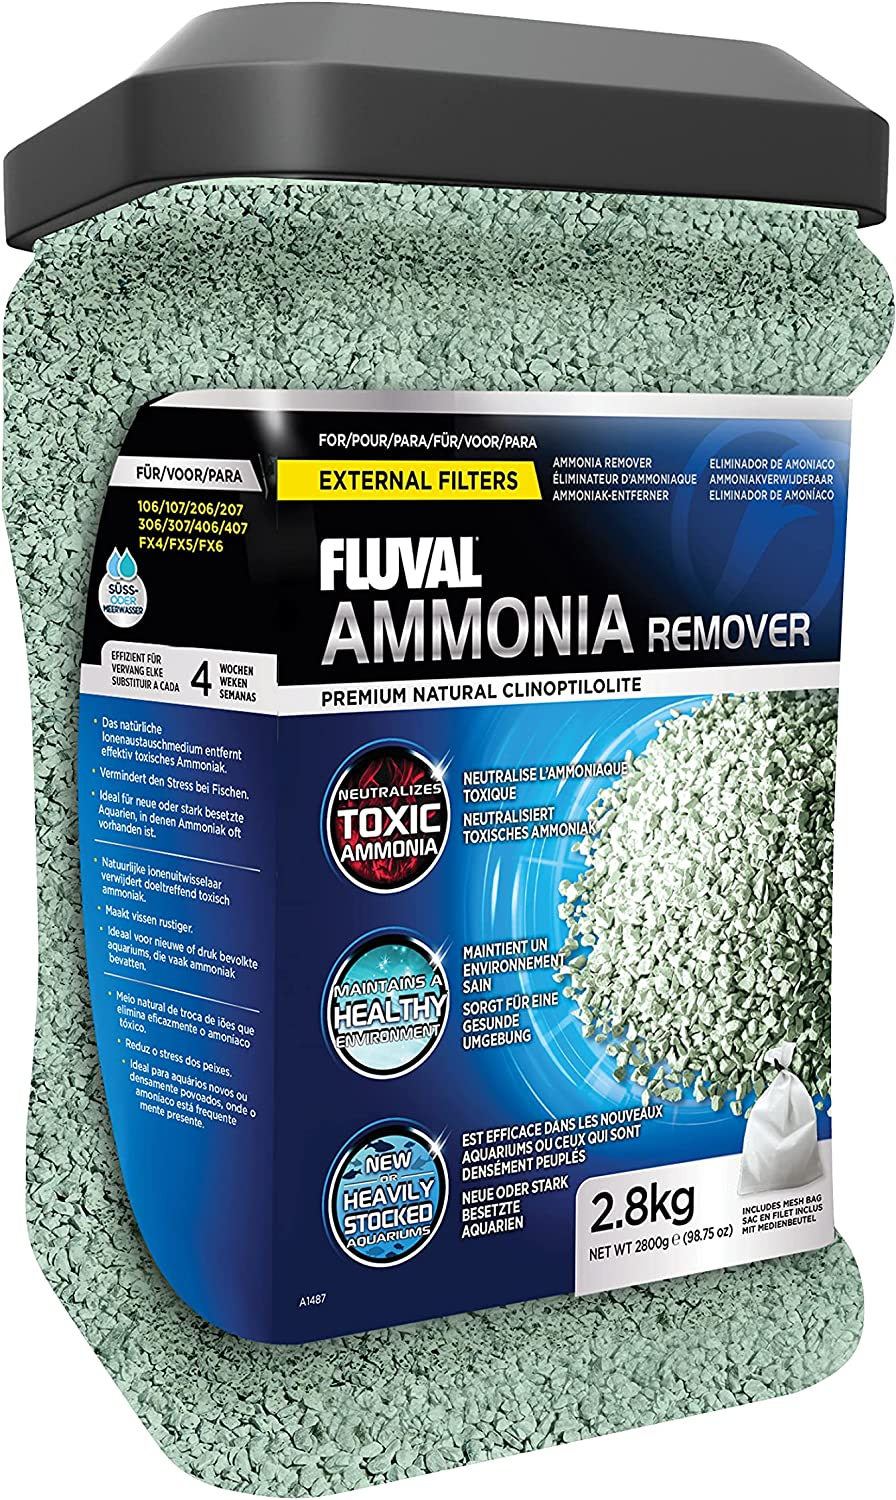 Fluval Ammonia Remover Chemical Filter A surprise price is realized Freshwater Media Ultra-Cheap Deals for Aqu